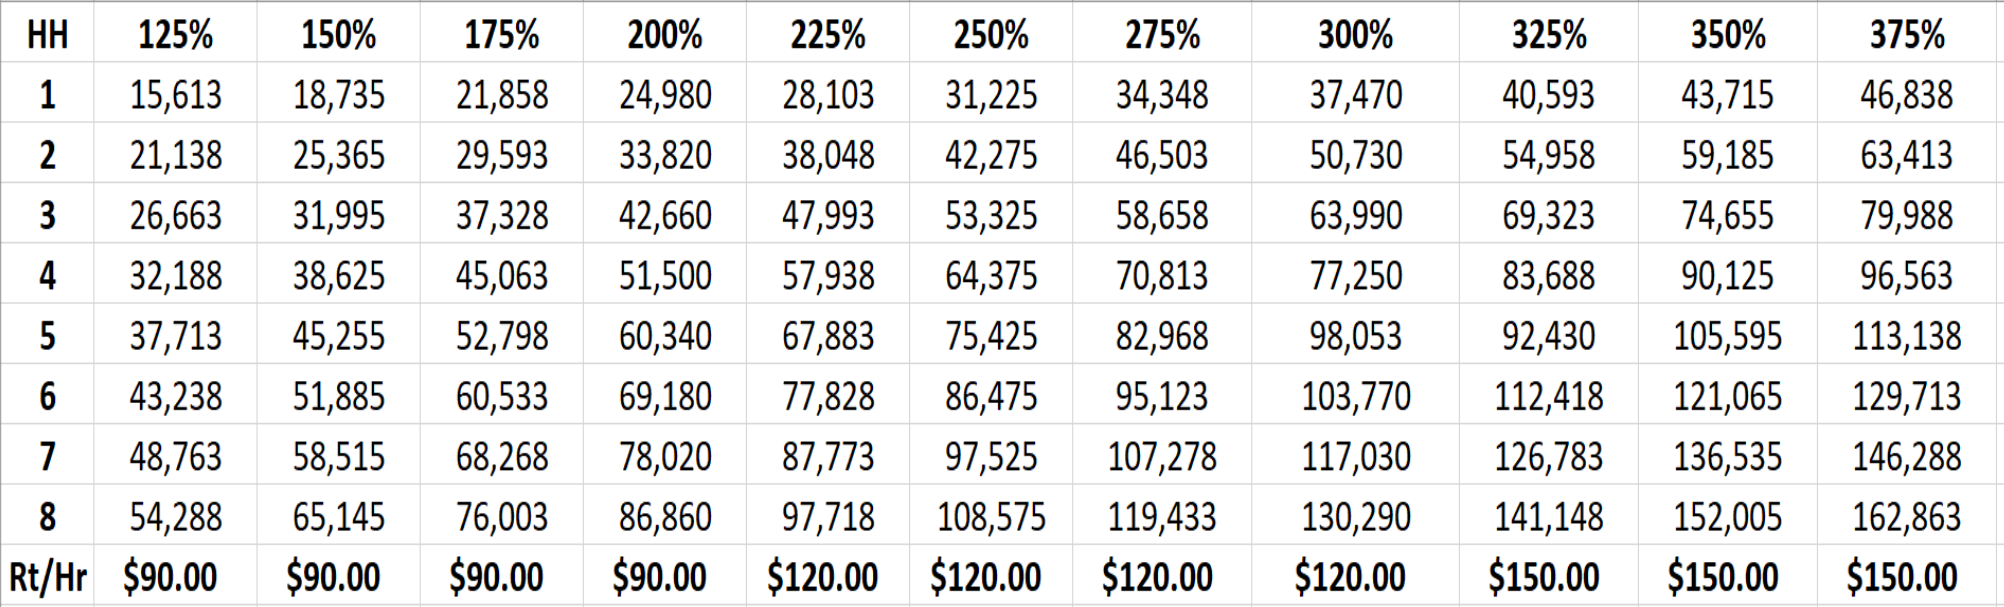 Fees Table 2019 Update.png